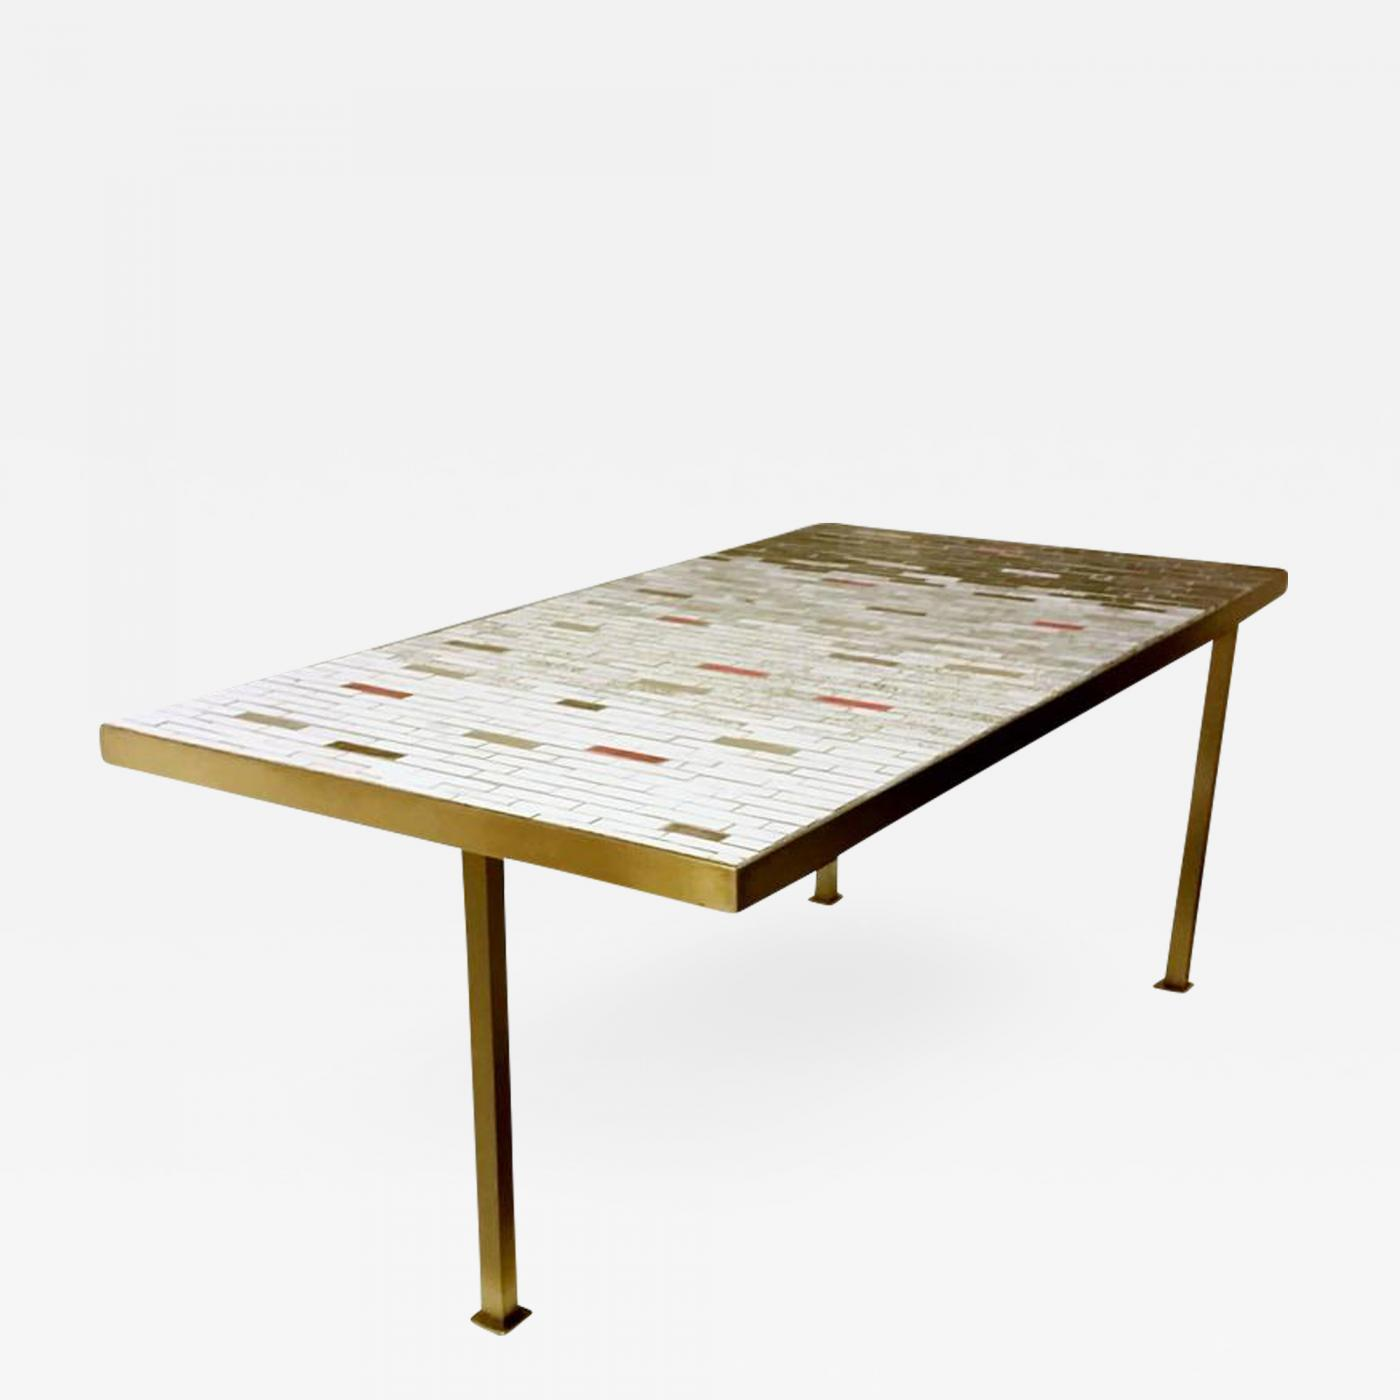 Remarkable Unique Handcrafted Studio Ceramic Tile Mosaic And Brass Coffee Table Circa 1950 Ocoug Best Dining Table And Chair Ideas Images Ocougorg